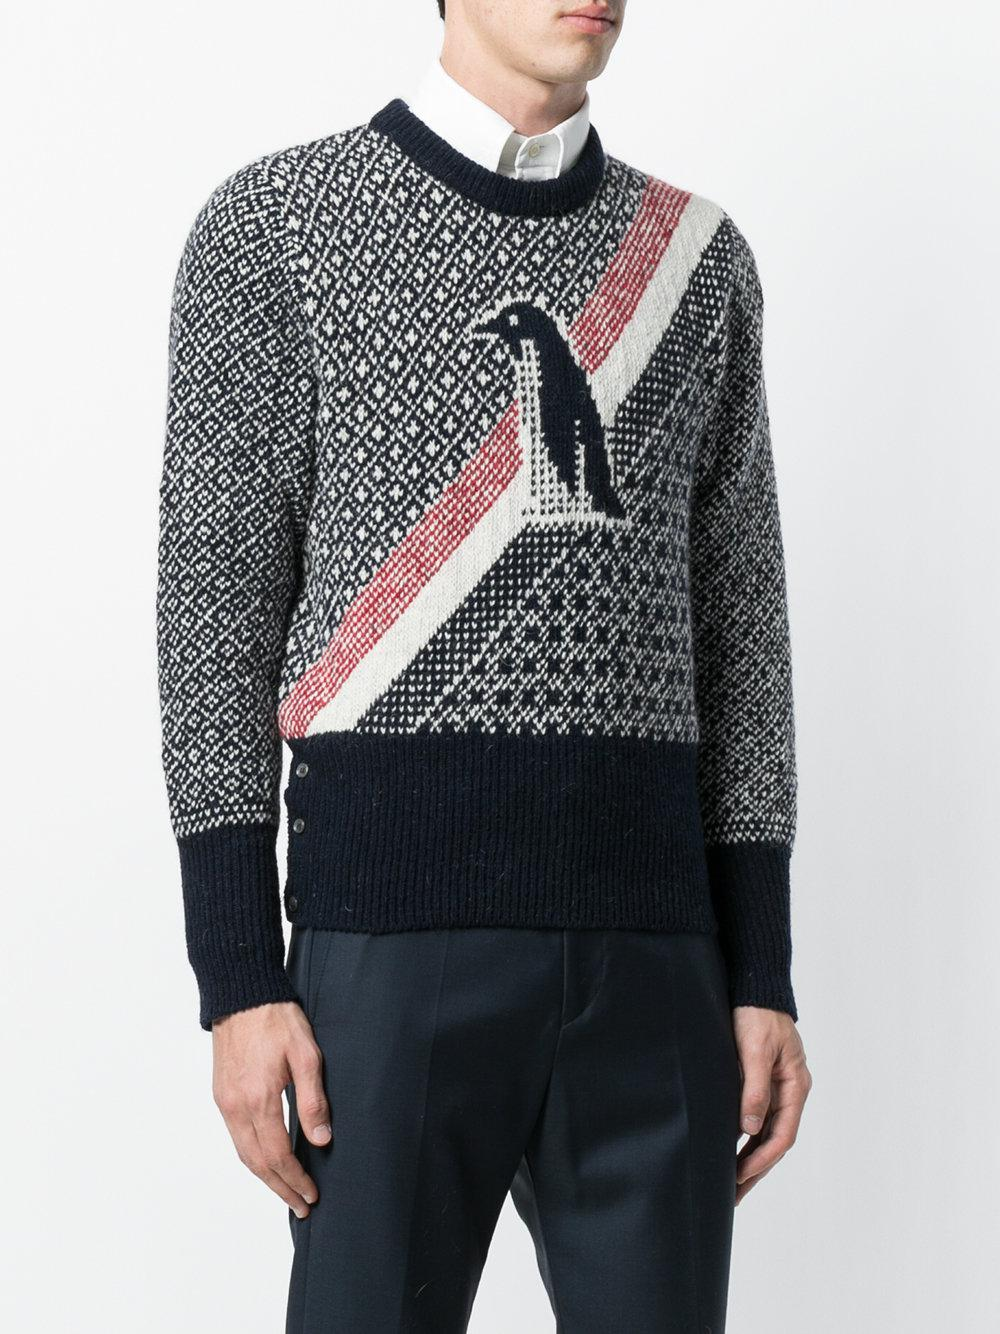 Duck Icon Jacquard Knit Mohair Tweed Crewneck Pullover - Blue Thom Browne Free Shipping In China Countdown Package Online Best Seller Discounts g91ZuK